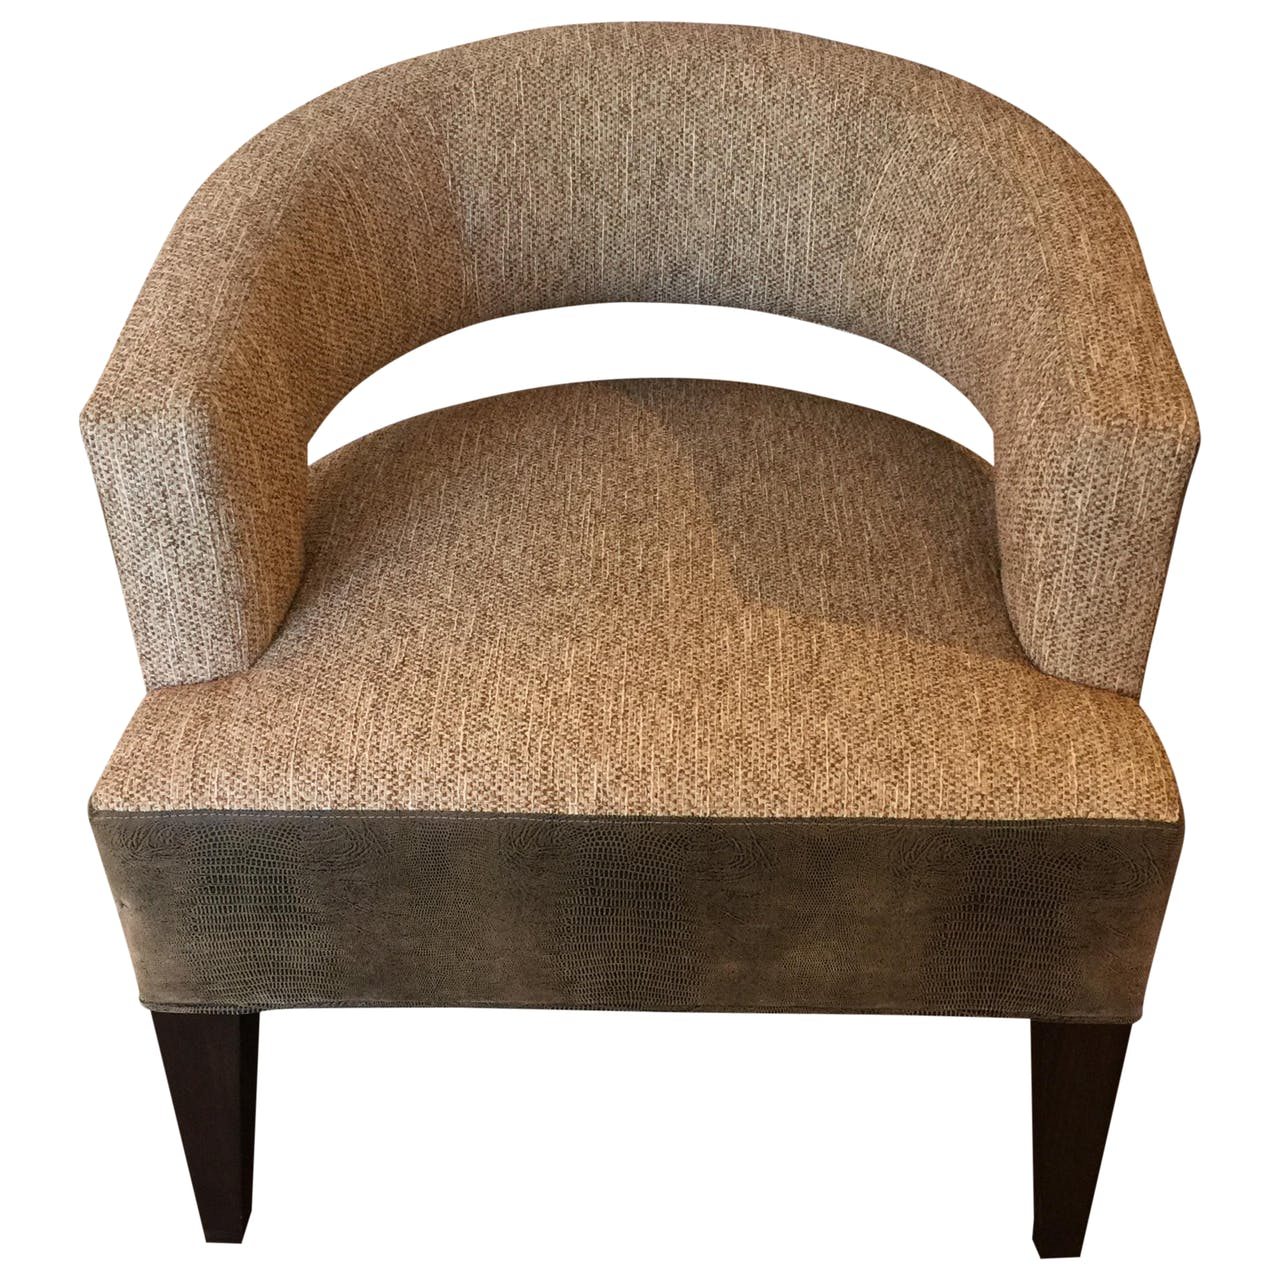 . The Modern Occasional Chair